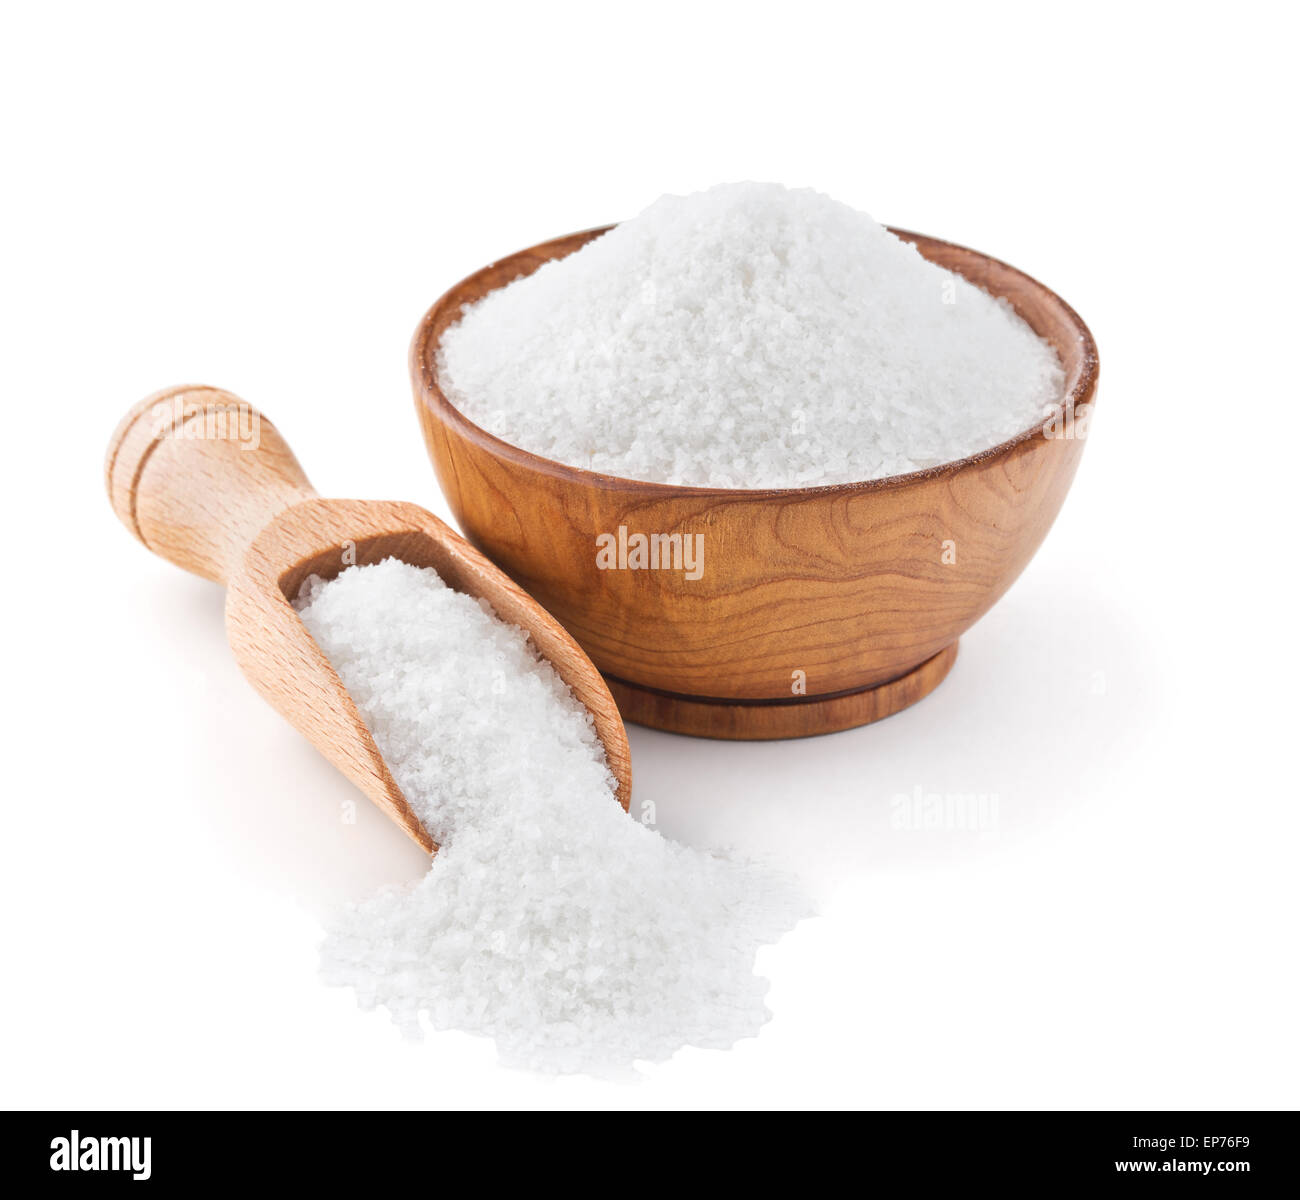 Regular table salt in a wooden bowl - Stock Image